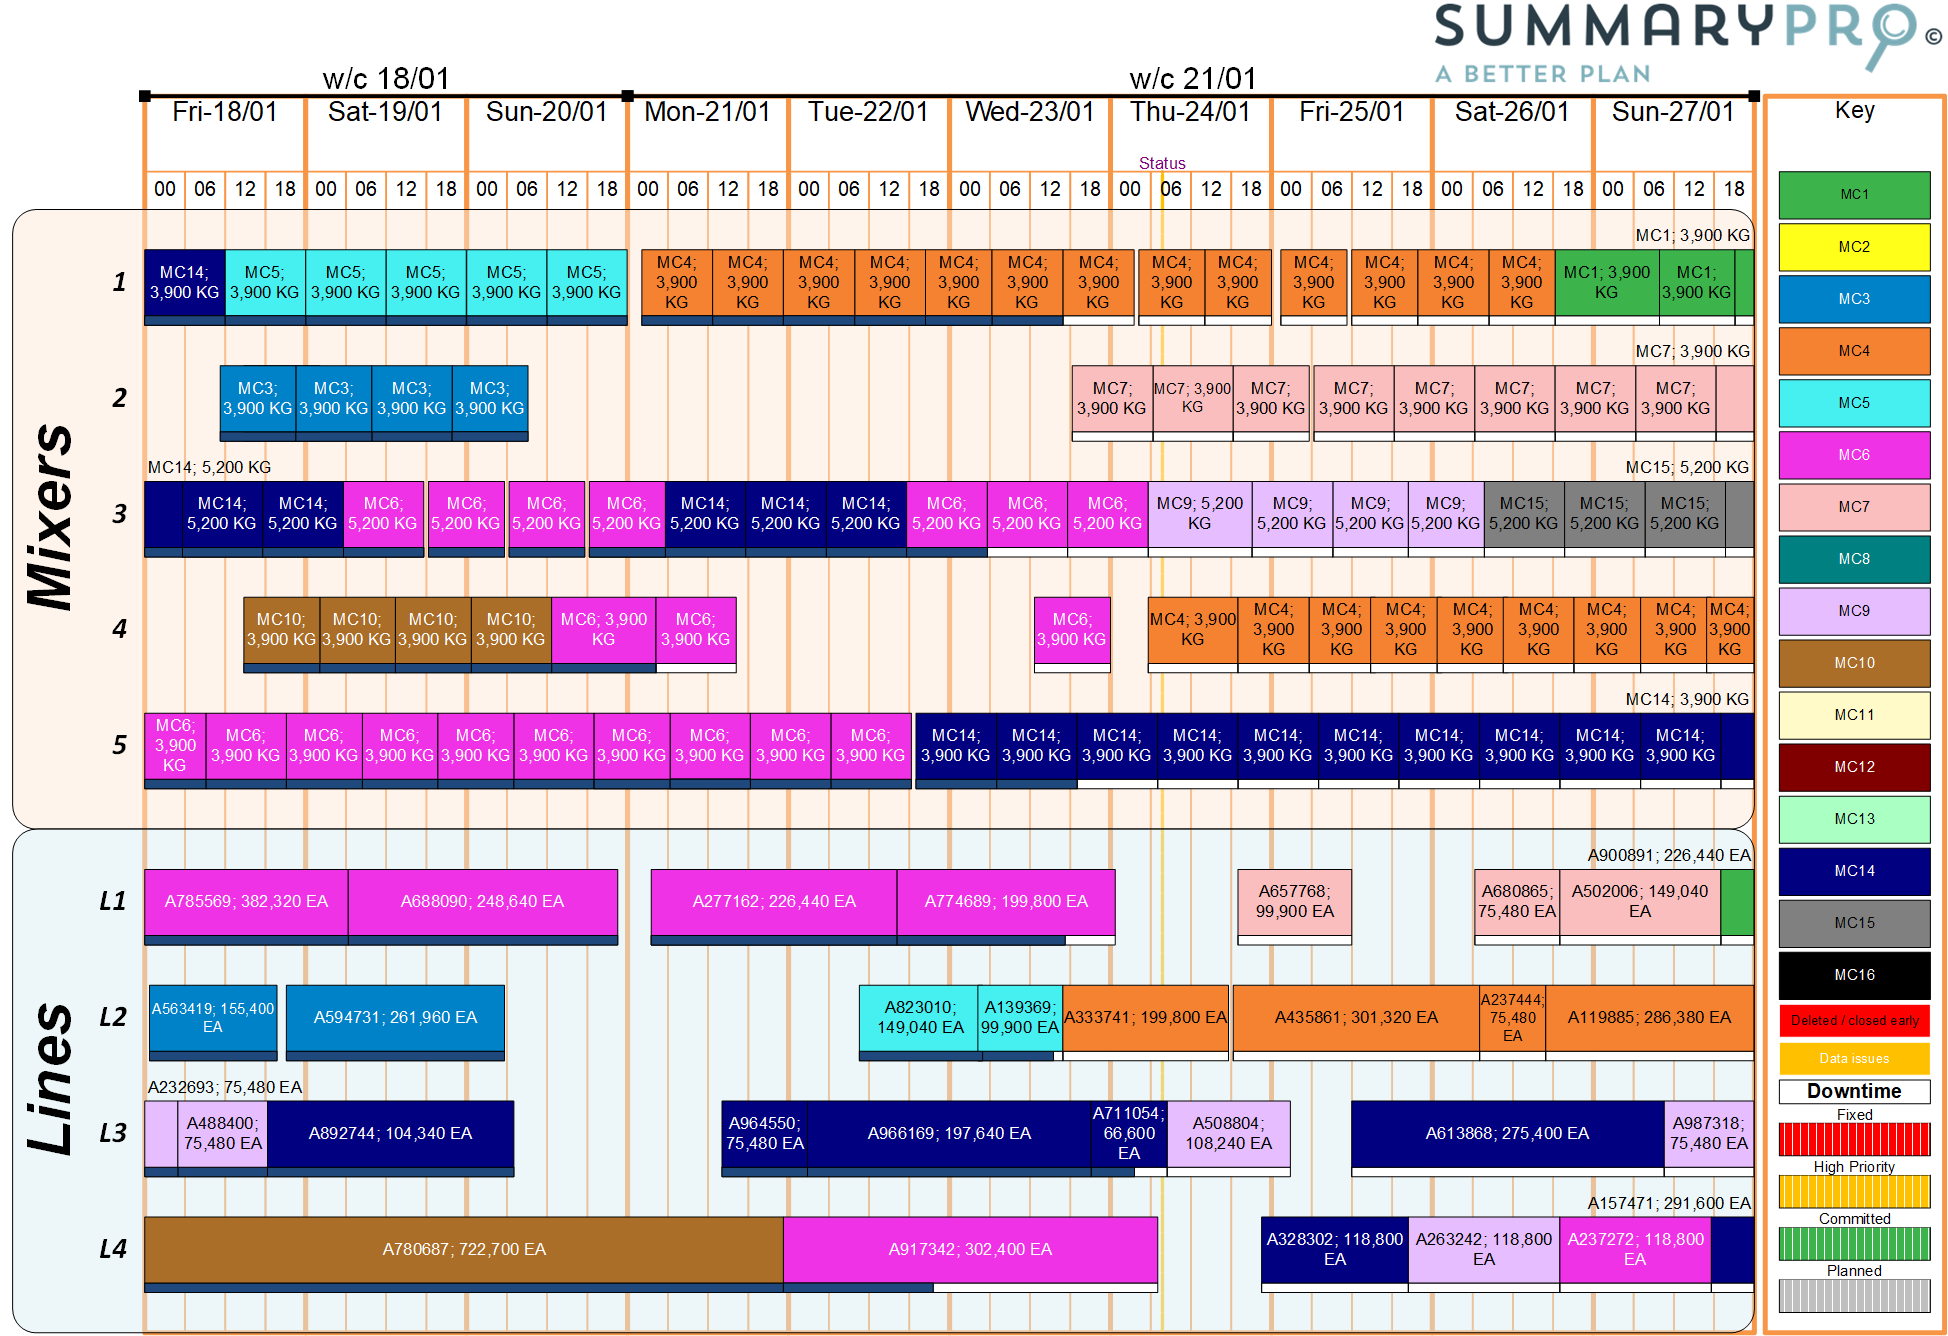 SummaryPro summary showing all assets in detail